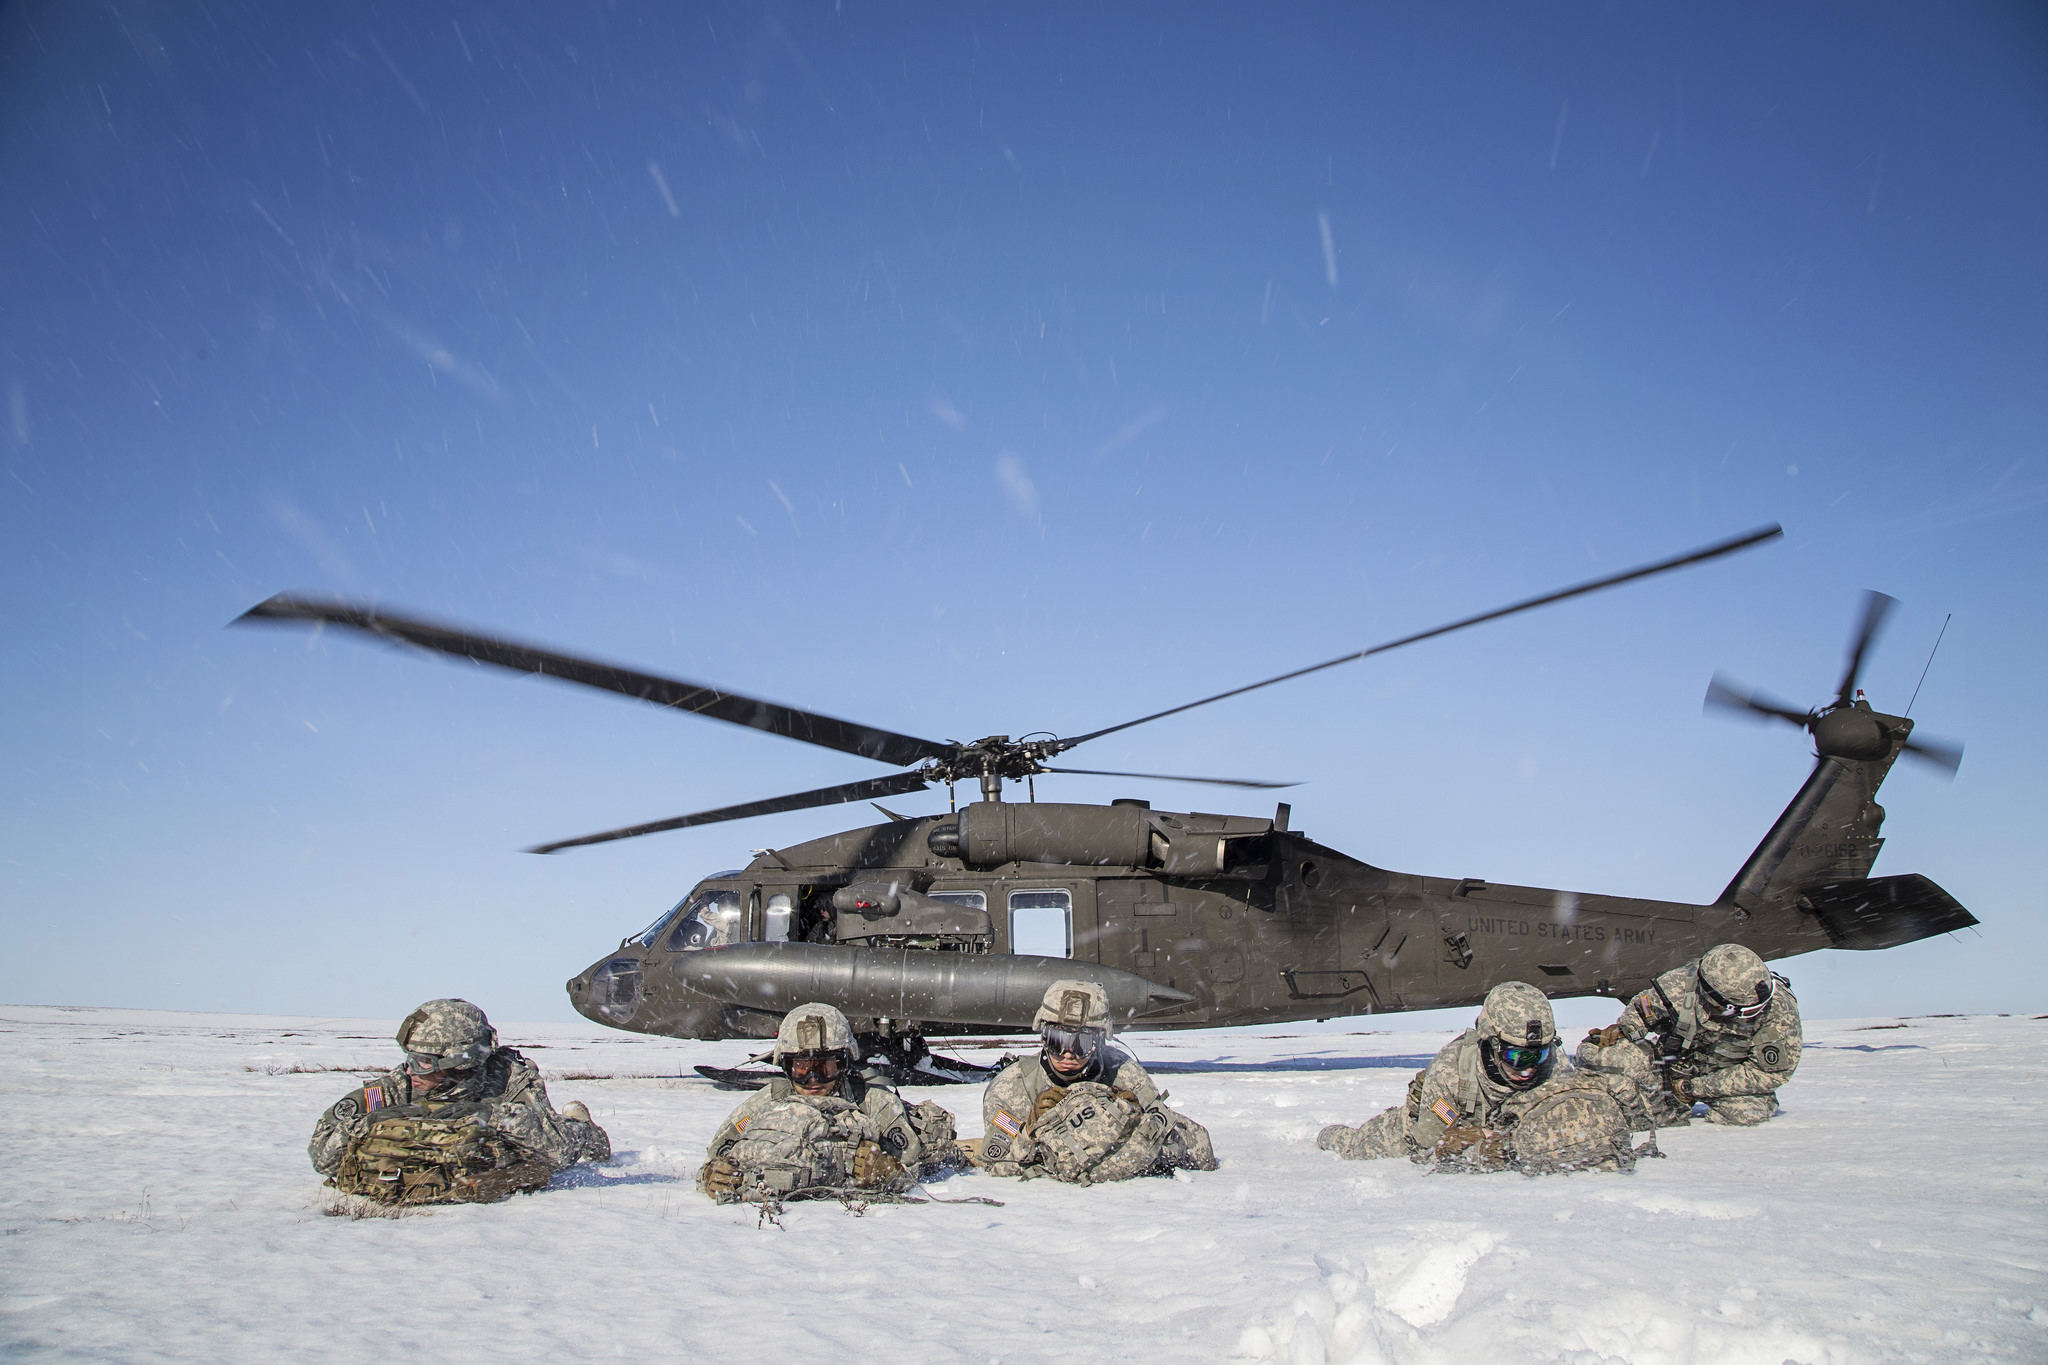 Paratroopers pull security after exiting a UH-60 Black Hawk helicopter during exercise Arctic Pegasus near Deadhorse, Alaska, May 1, 2014. (Sgt. Edward Eagerton/Army National Guard)